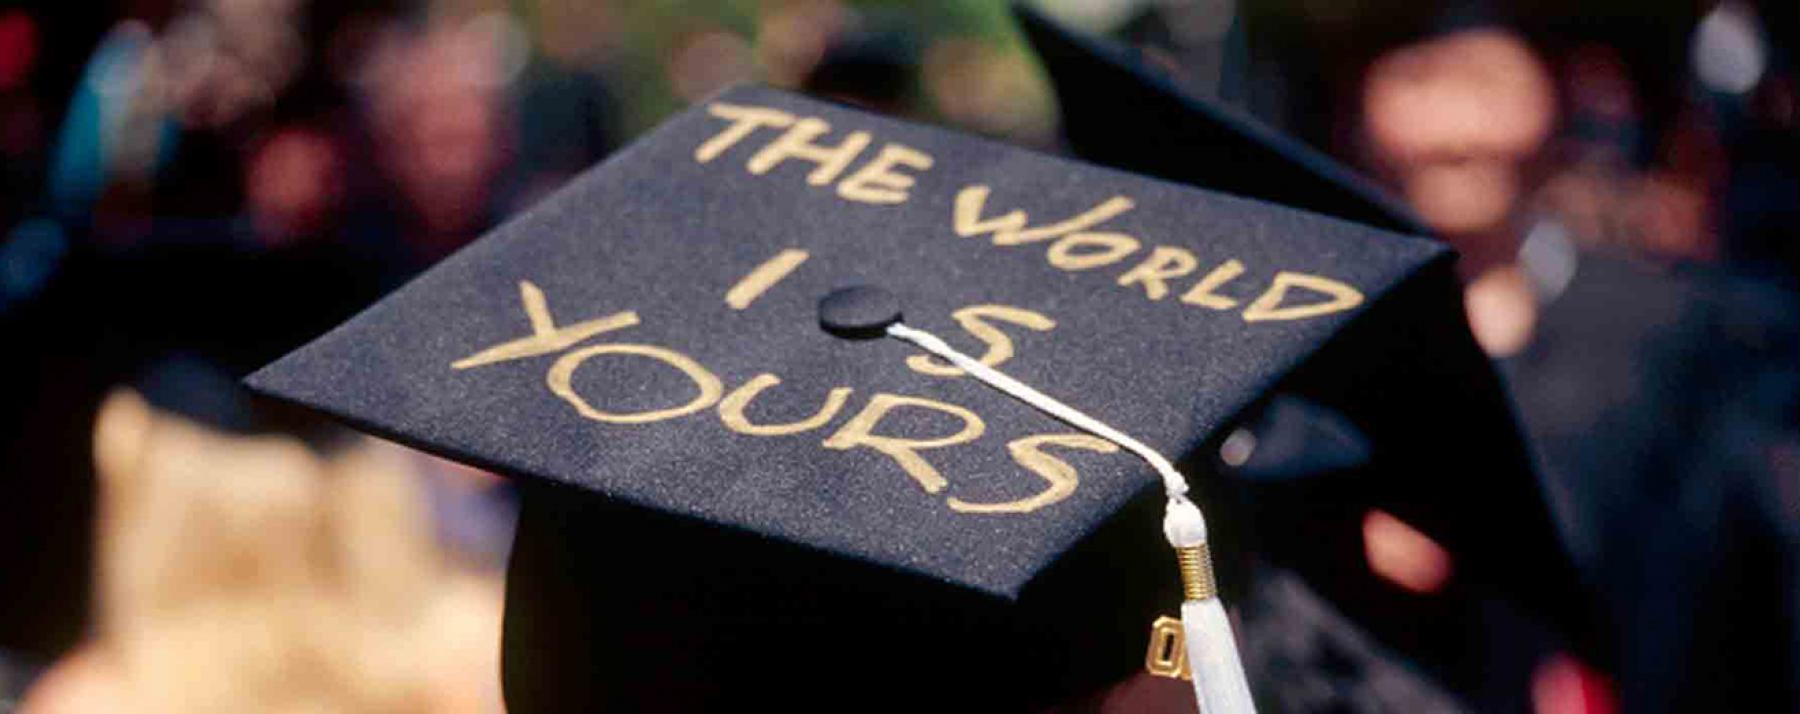 "Student's graduation cap reading, ""The world is yours."""